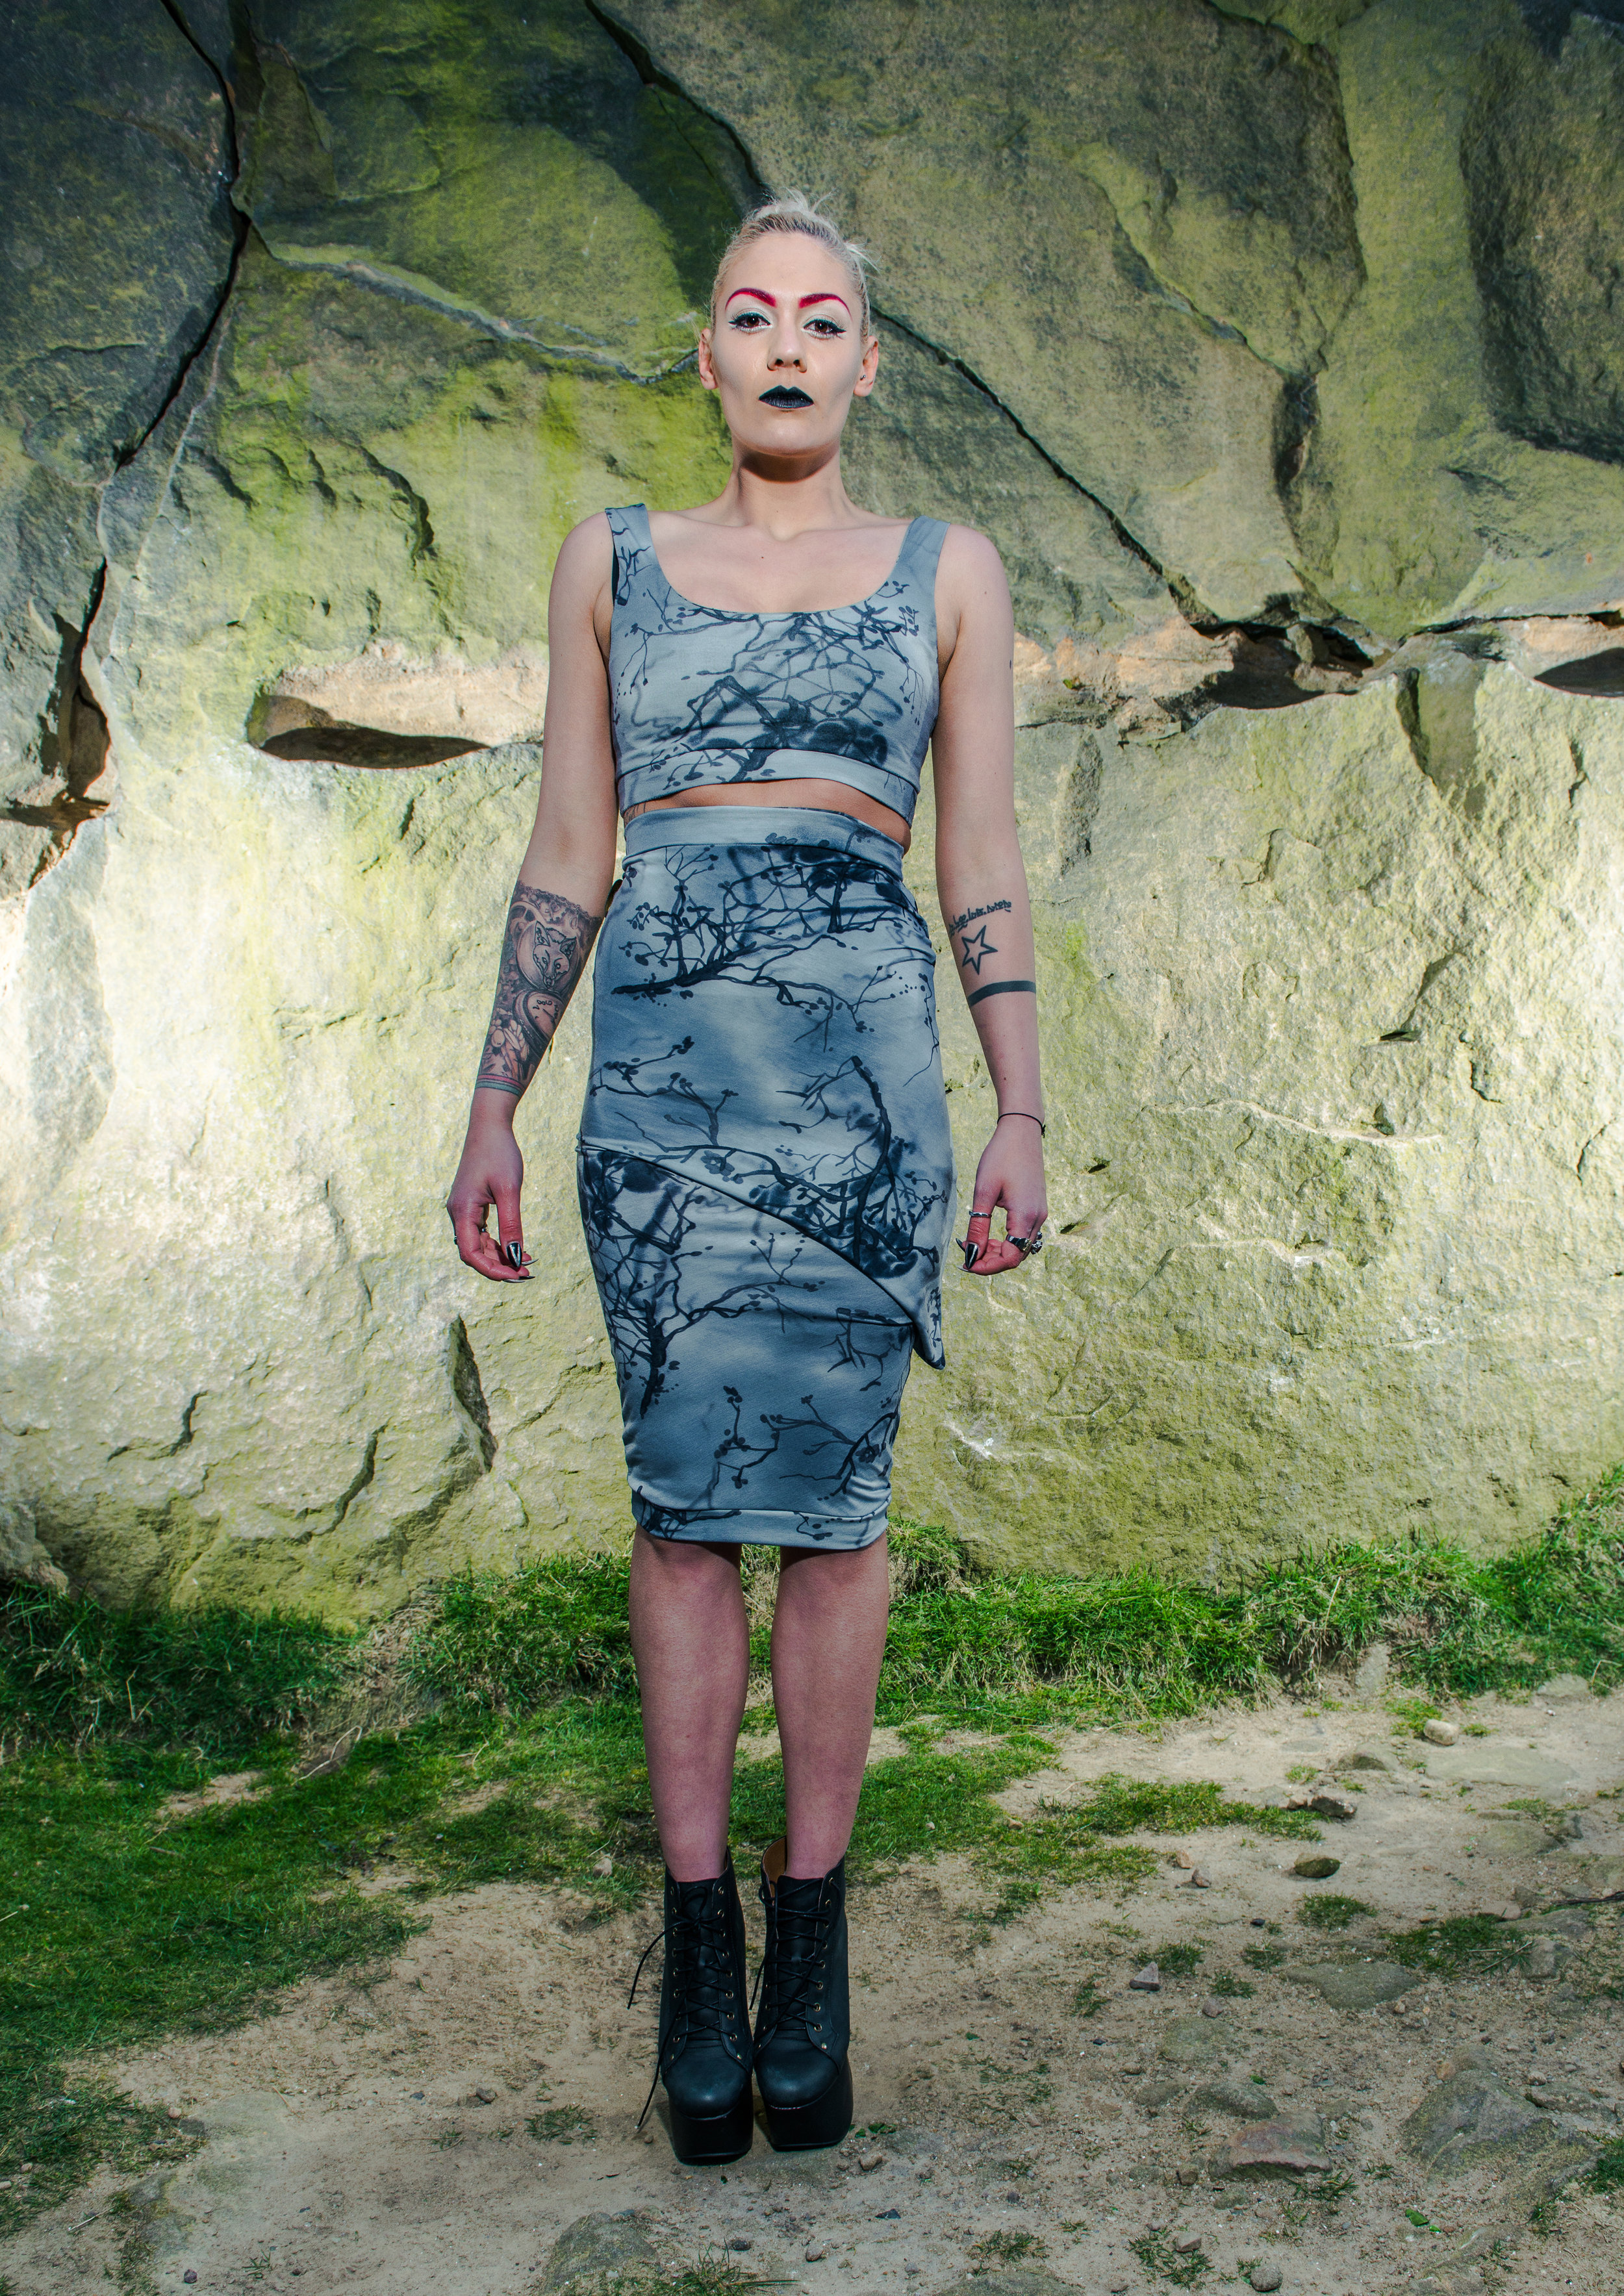 zaramia-ava-zaramiaava-leeds-fashion-designer-ethical-sustainable-tailored-minimalist-aya-grey-print-fitted-bandeau-point-skirt-versatile-drape-cowl-styling-womenswear-models-photoshoot-location-19